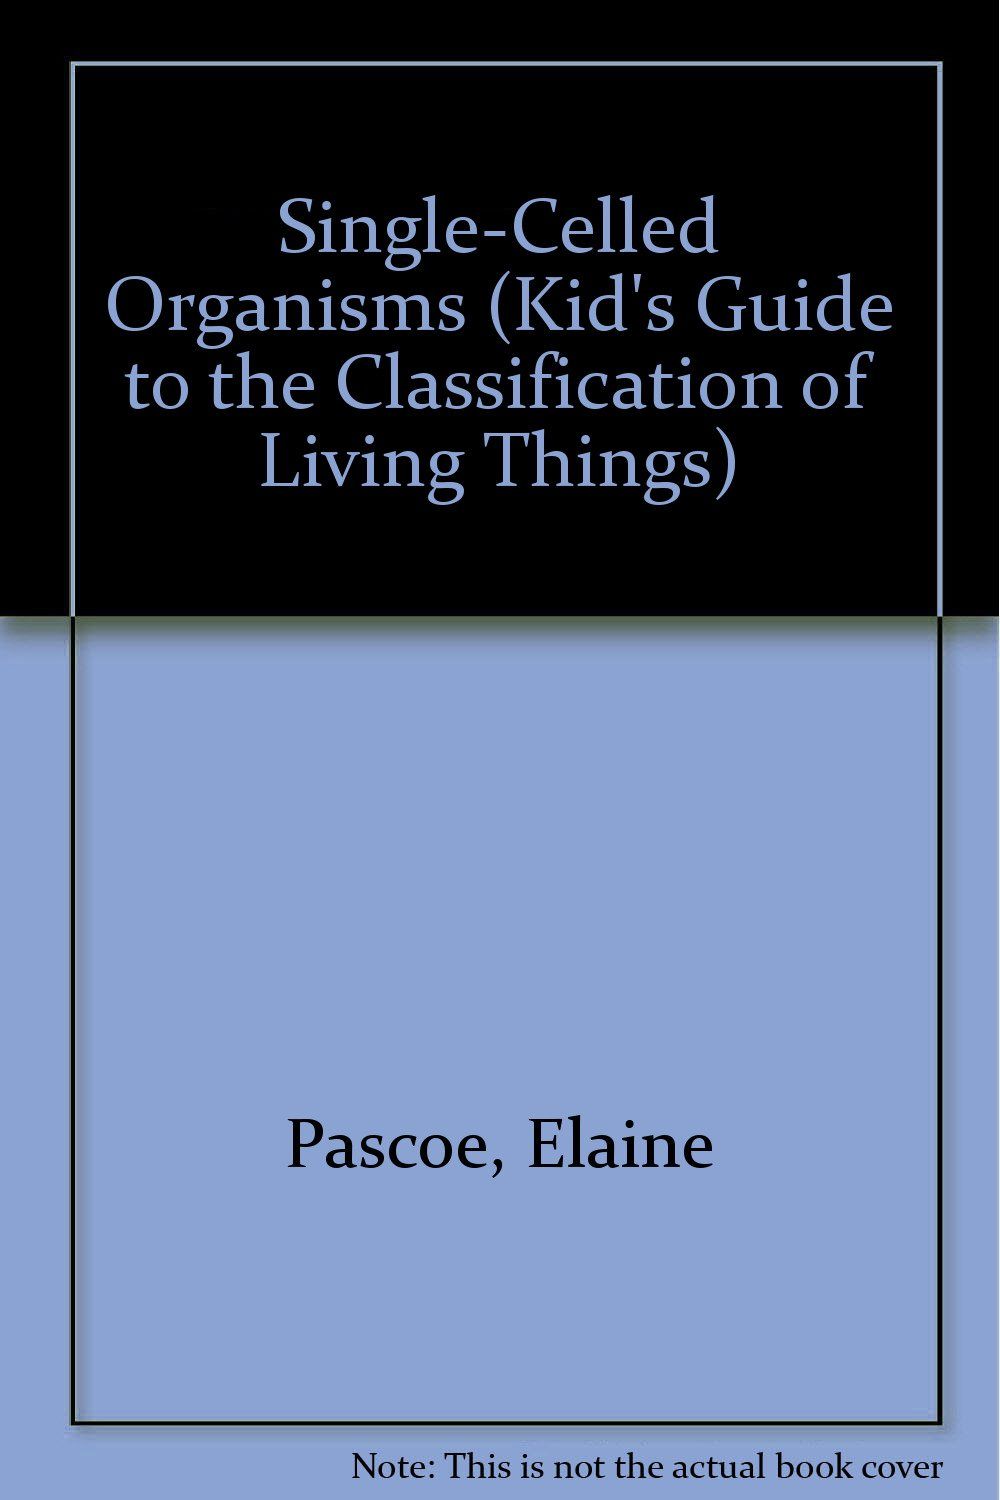 Download Single-Celled Organisms (Kid's Guide to the Classification of Living Things) PDF